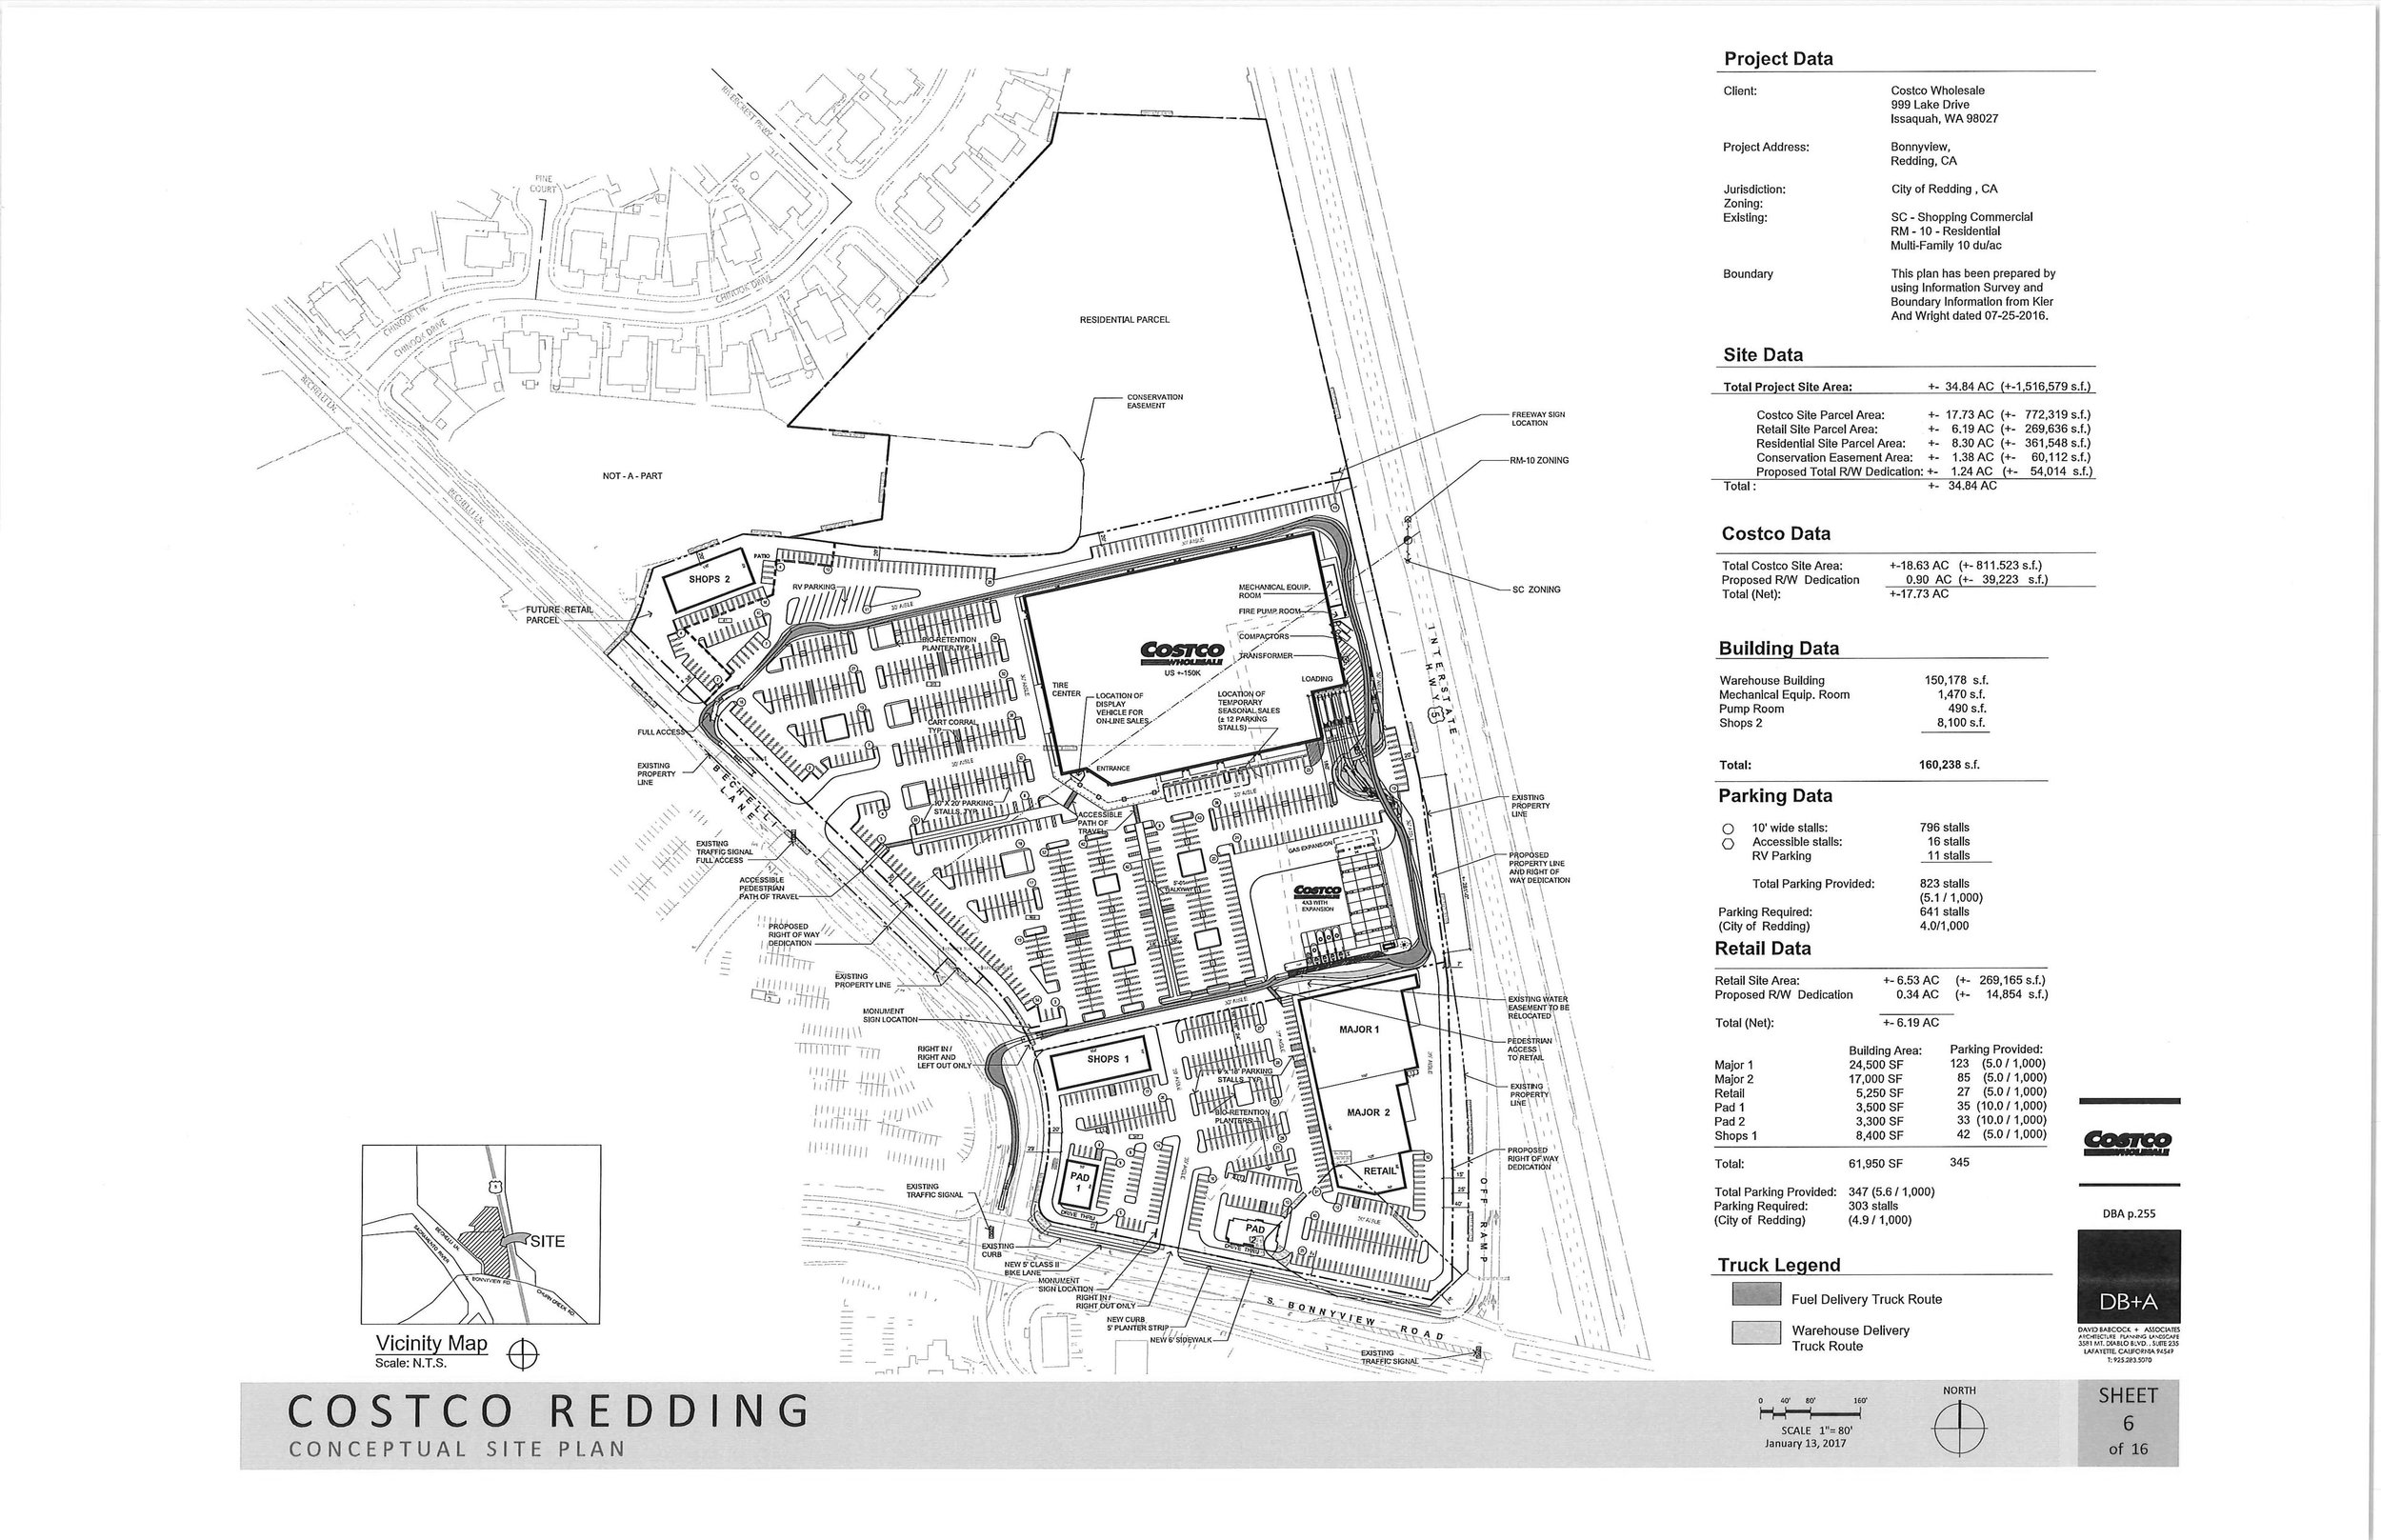 Nearly since the day it moved to Redding, Costco has needed more space to handle the demand in our area. Once the plan to move off Oasis fell through they identified a great piece of land just off I-5 and the Bonnyview exit. With and EIR (Environmental Impact Report)in process, they are likely two years from breaking ground.